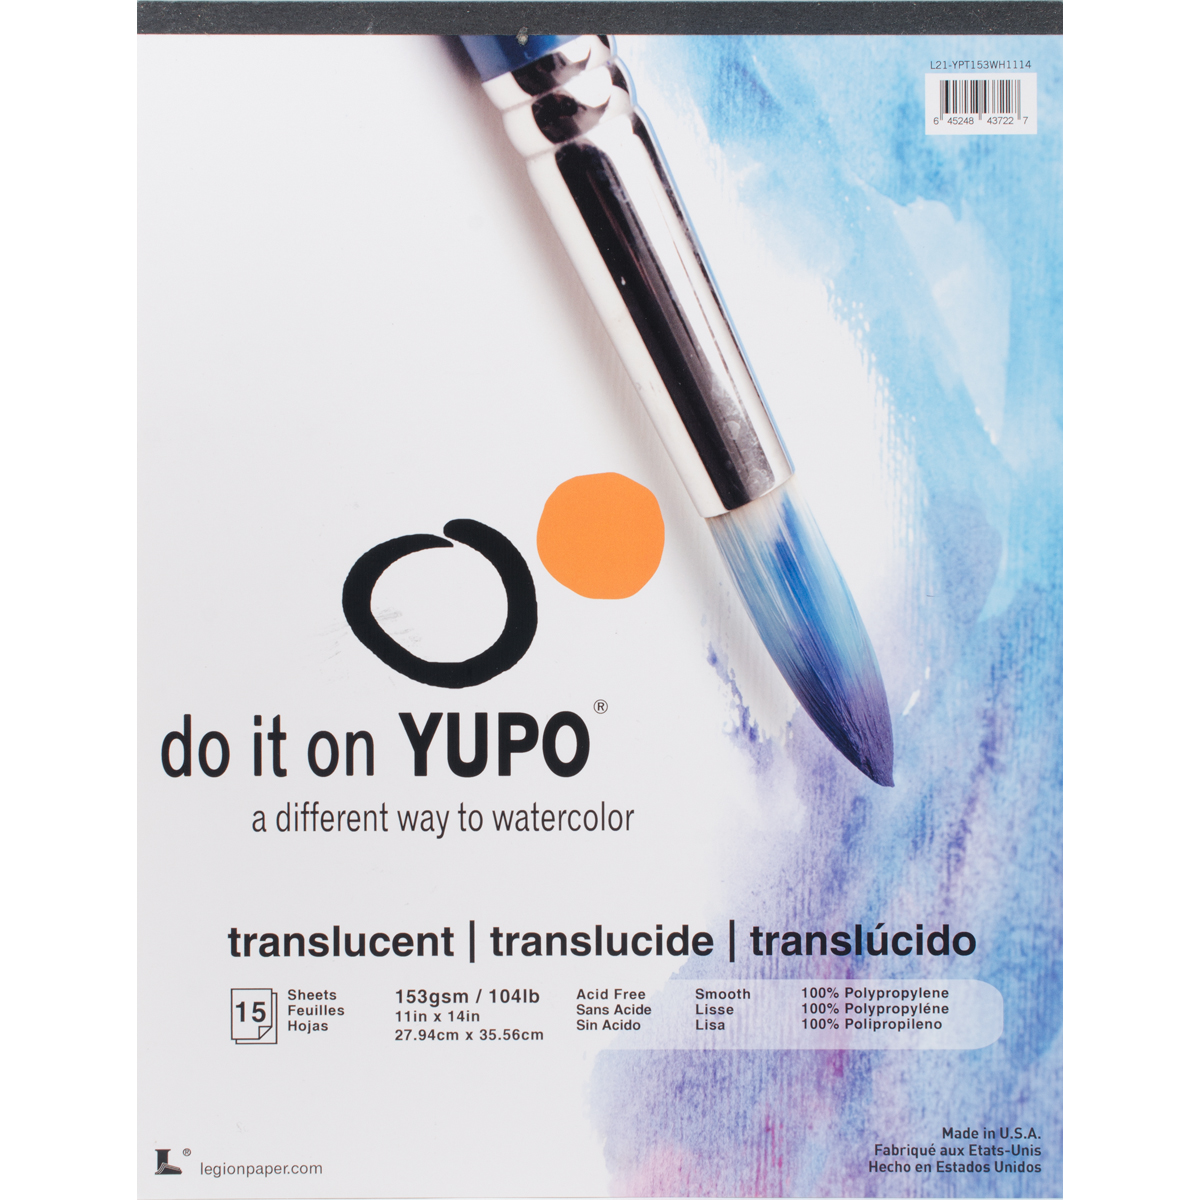 Legion Paper Yupo Translucent Watercolor Pad, 15 Sheets, 11in x 14in